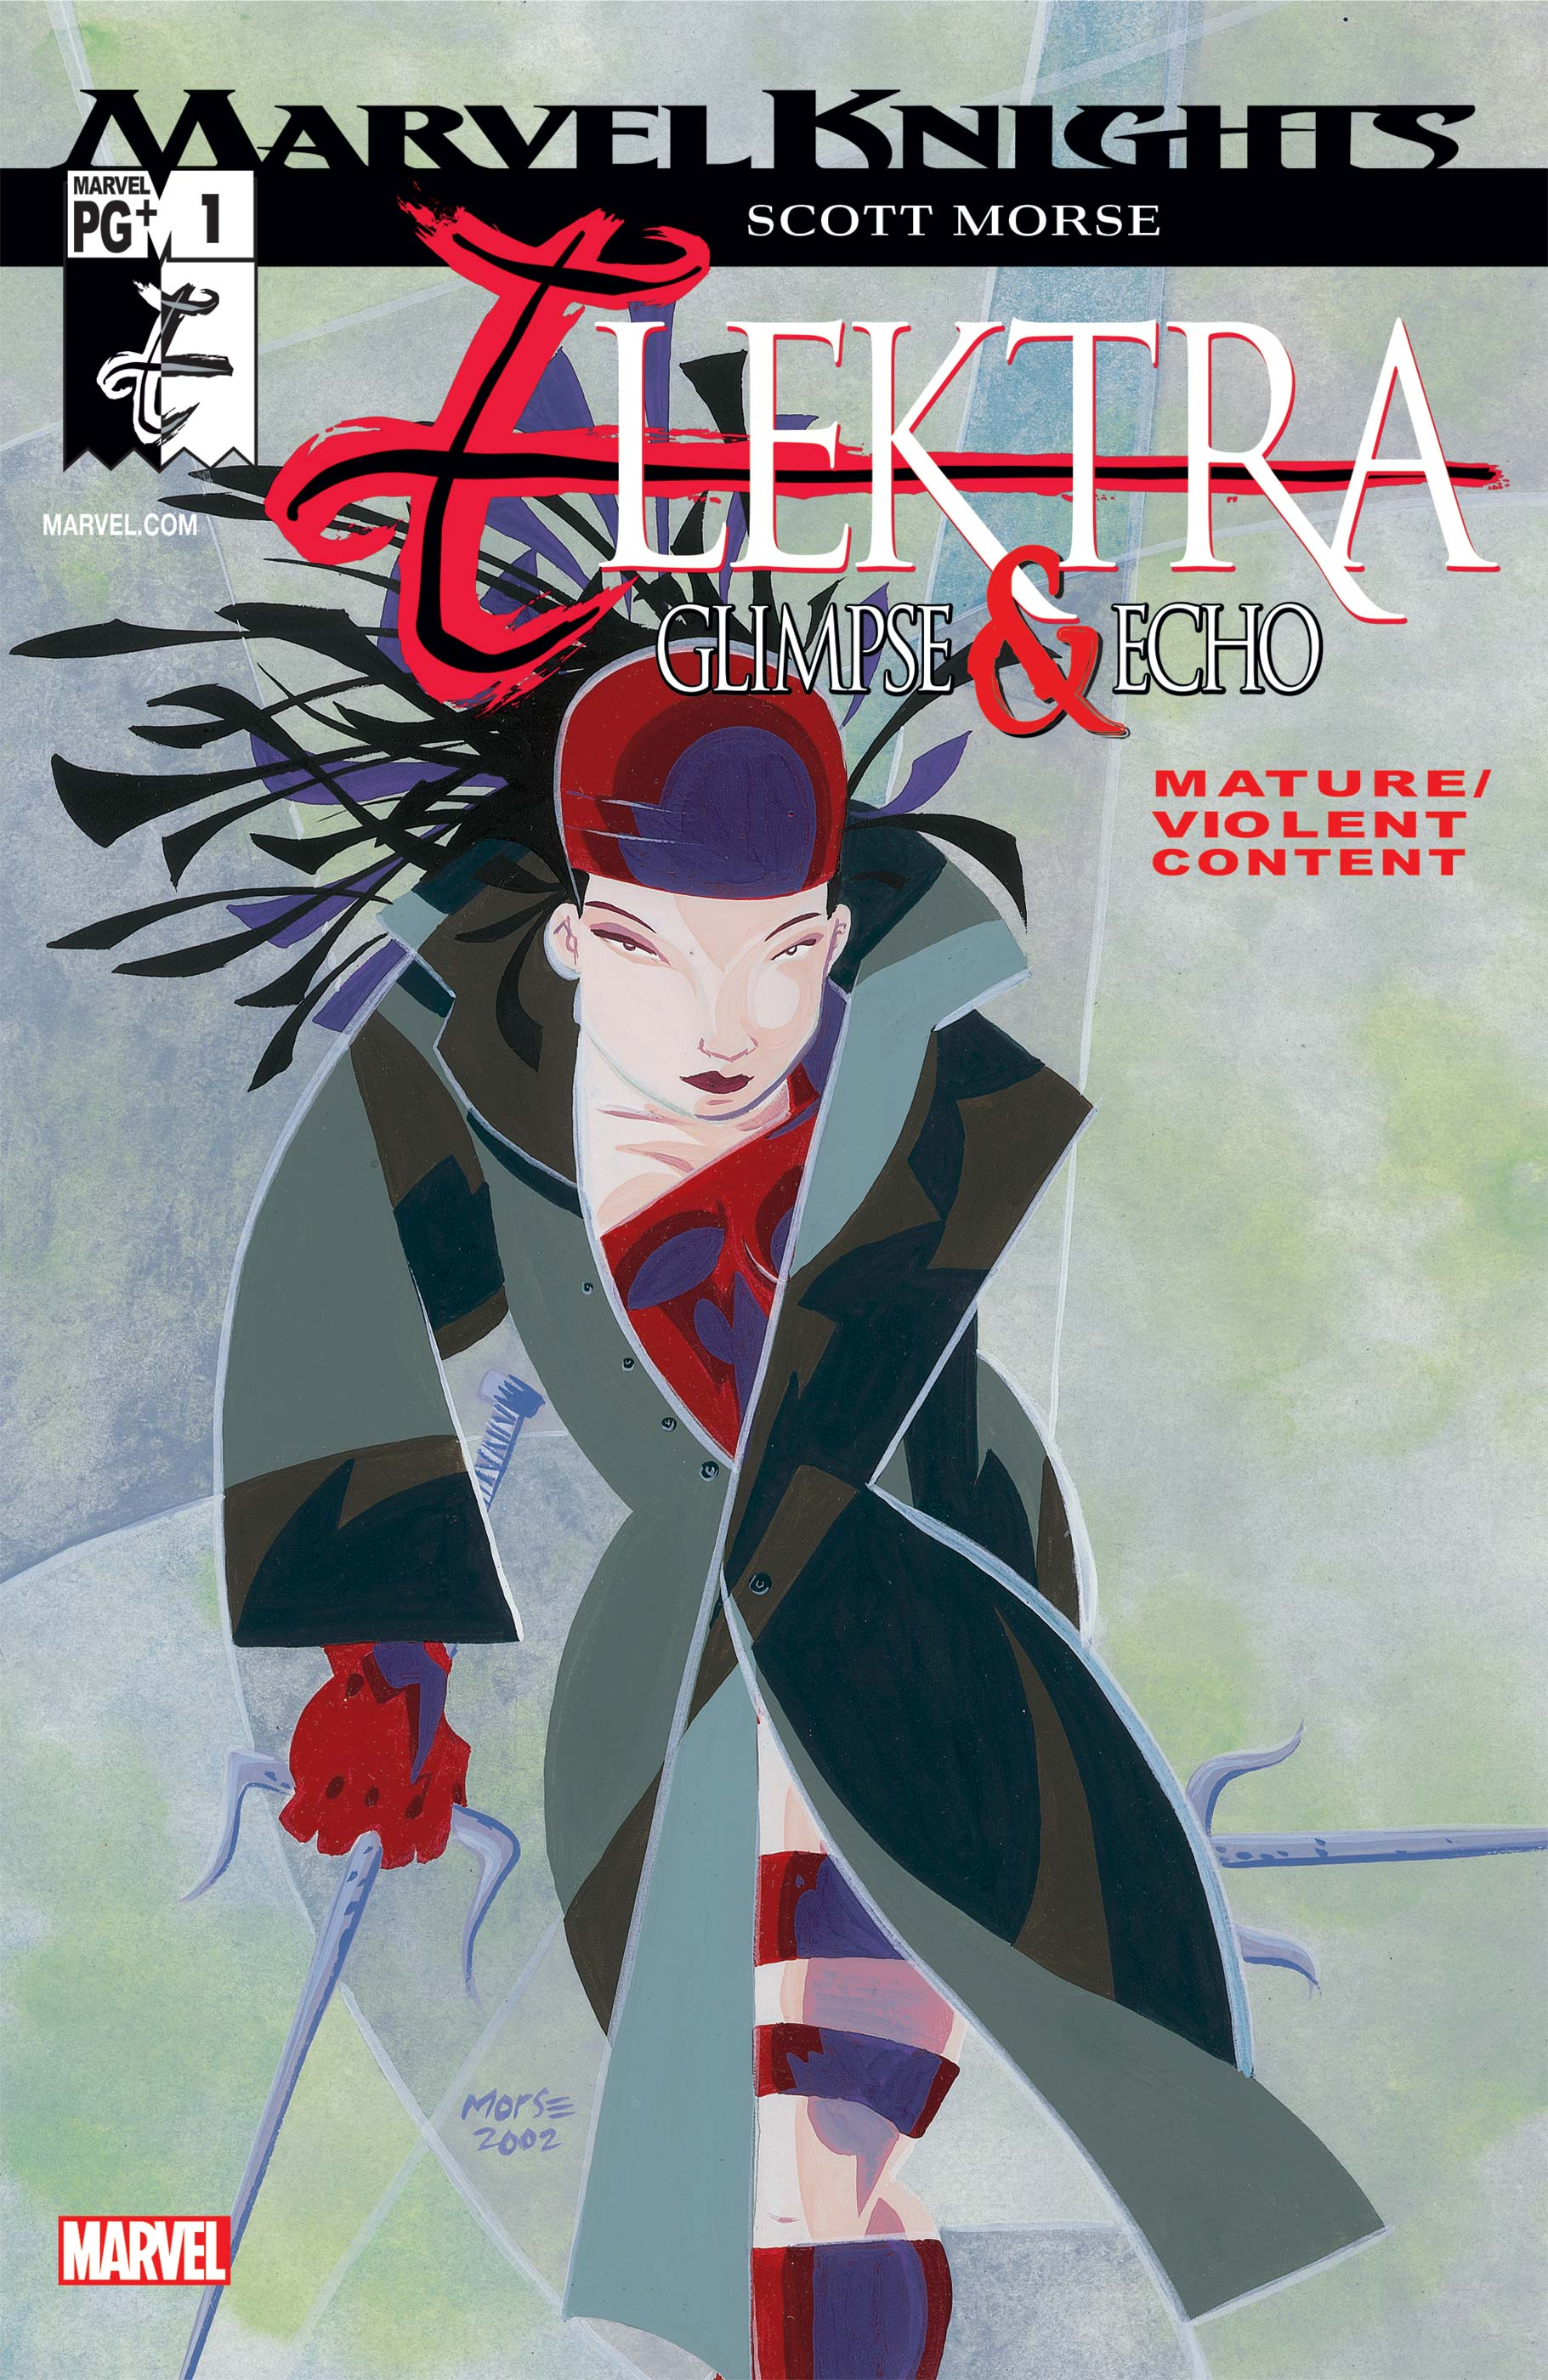 Elektra: Glimpse and Echo (2002) #1